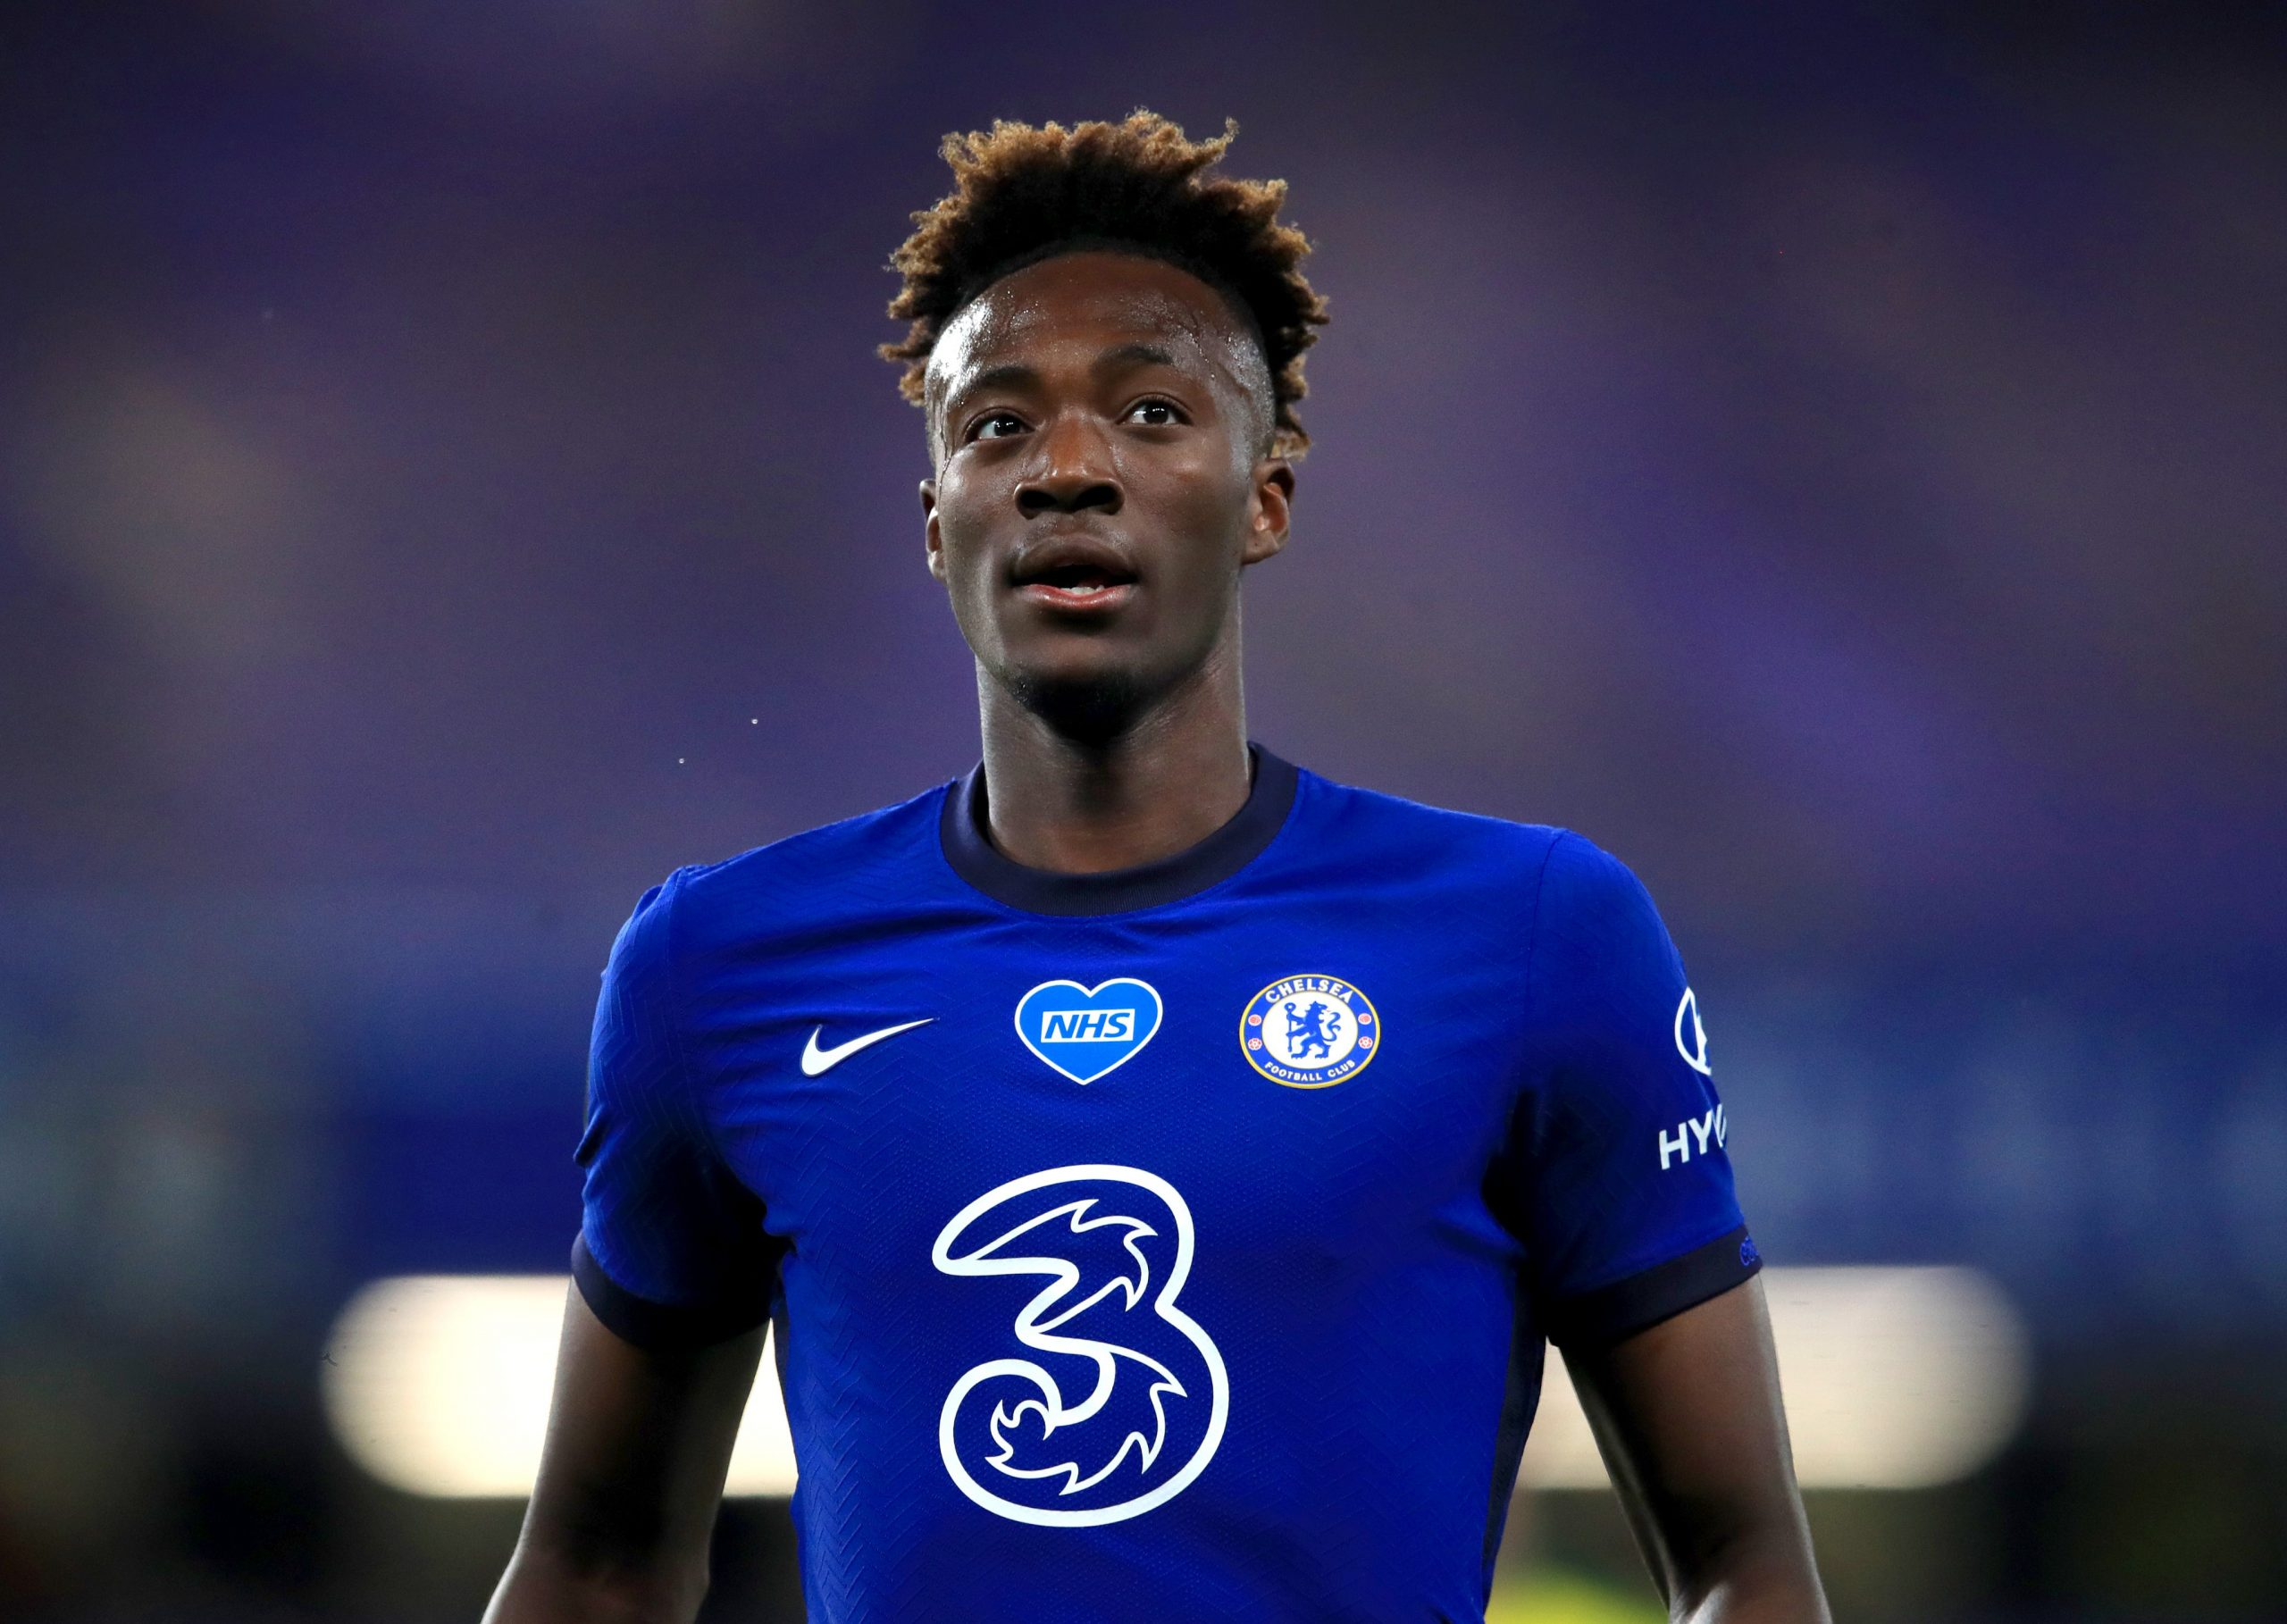 Chelsea Ready To Consider Any Offers For Abraham